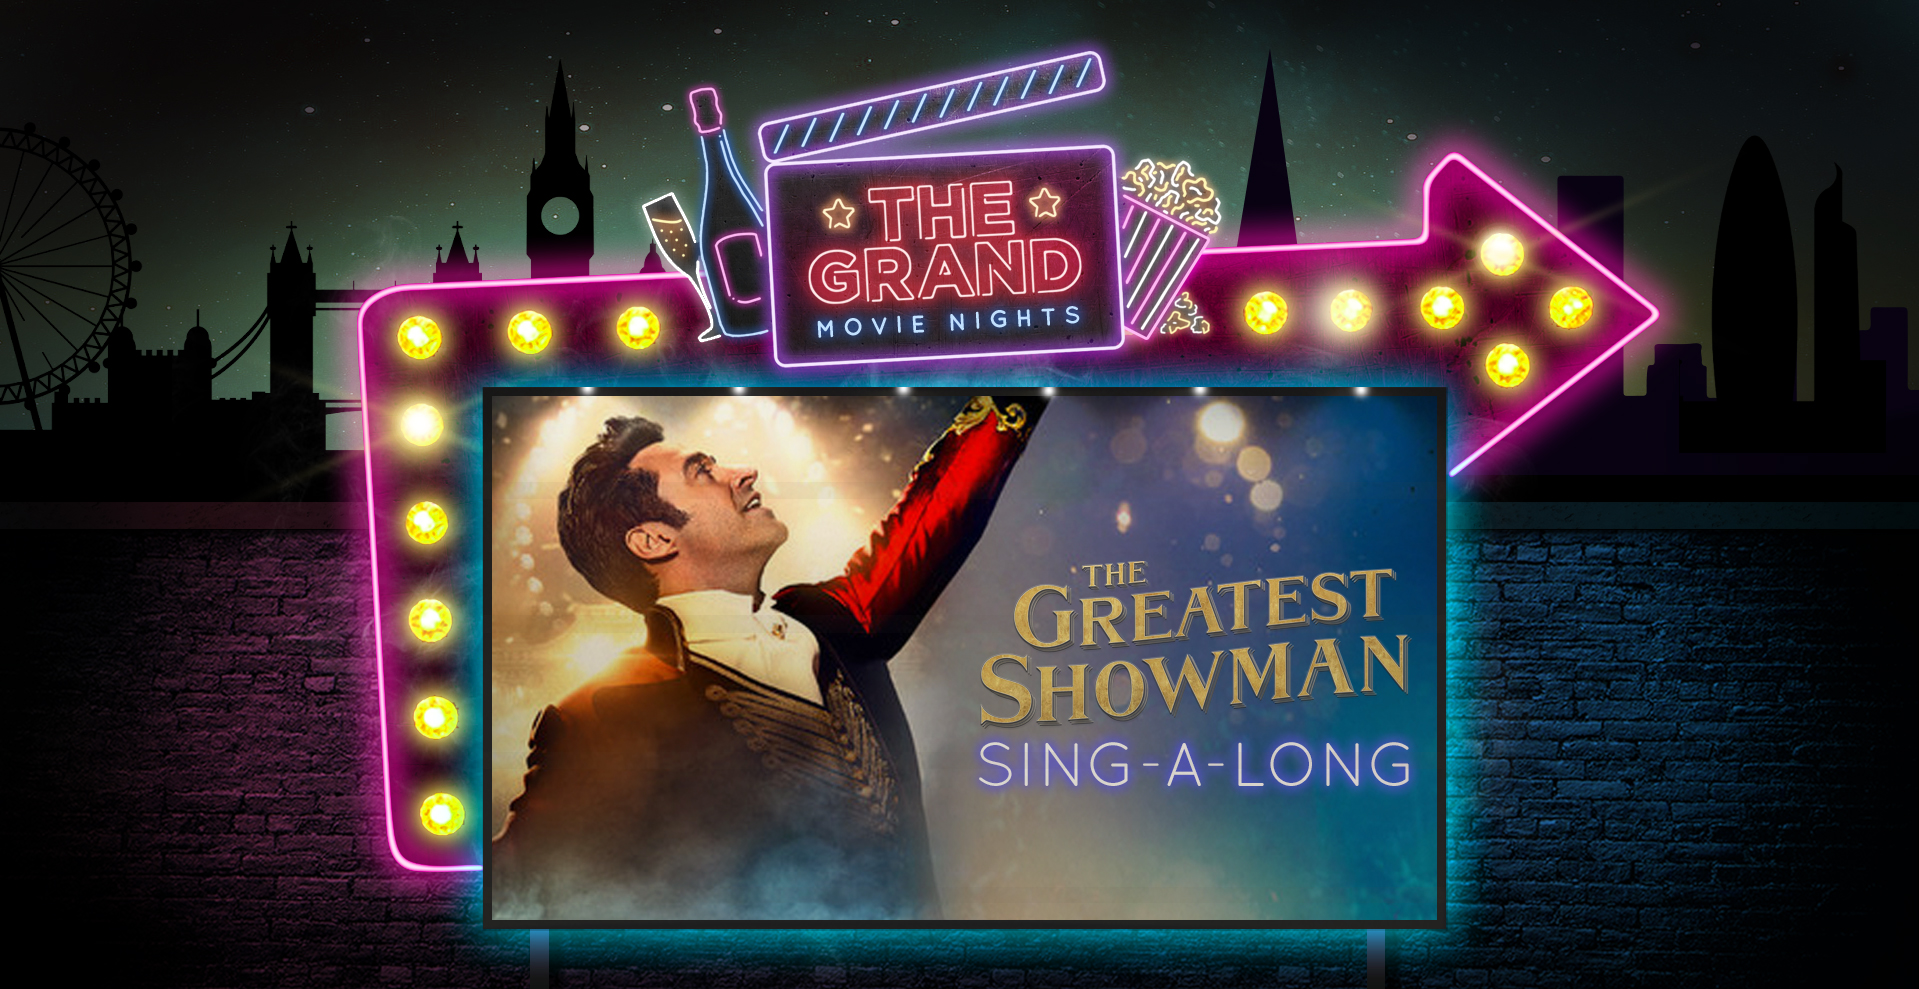 The Greatest Showman Sing-a-Long